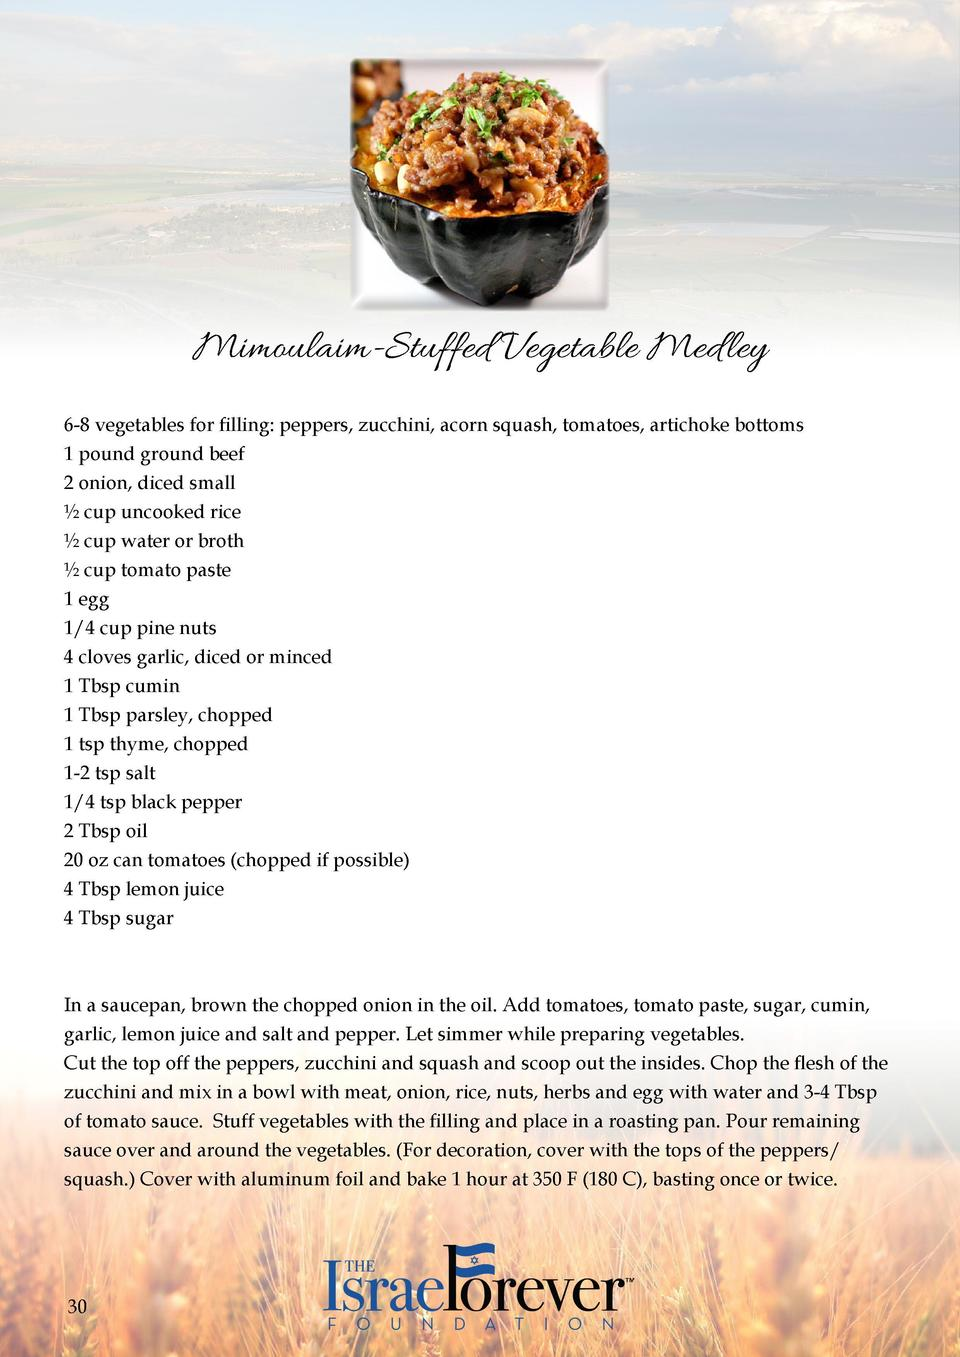 Mimoulaim-Stuffed Vegetable Med ley 6-8 vegetables for filling  peppers, zucchini, acorn squash, tomatoes, artichoke botto...